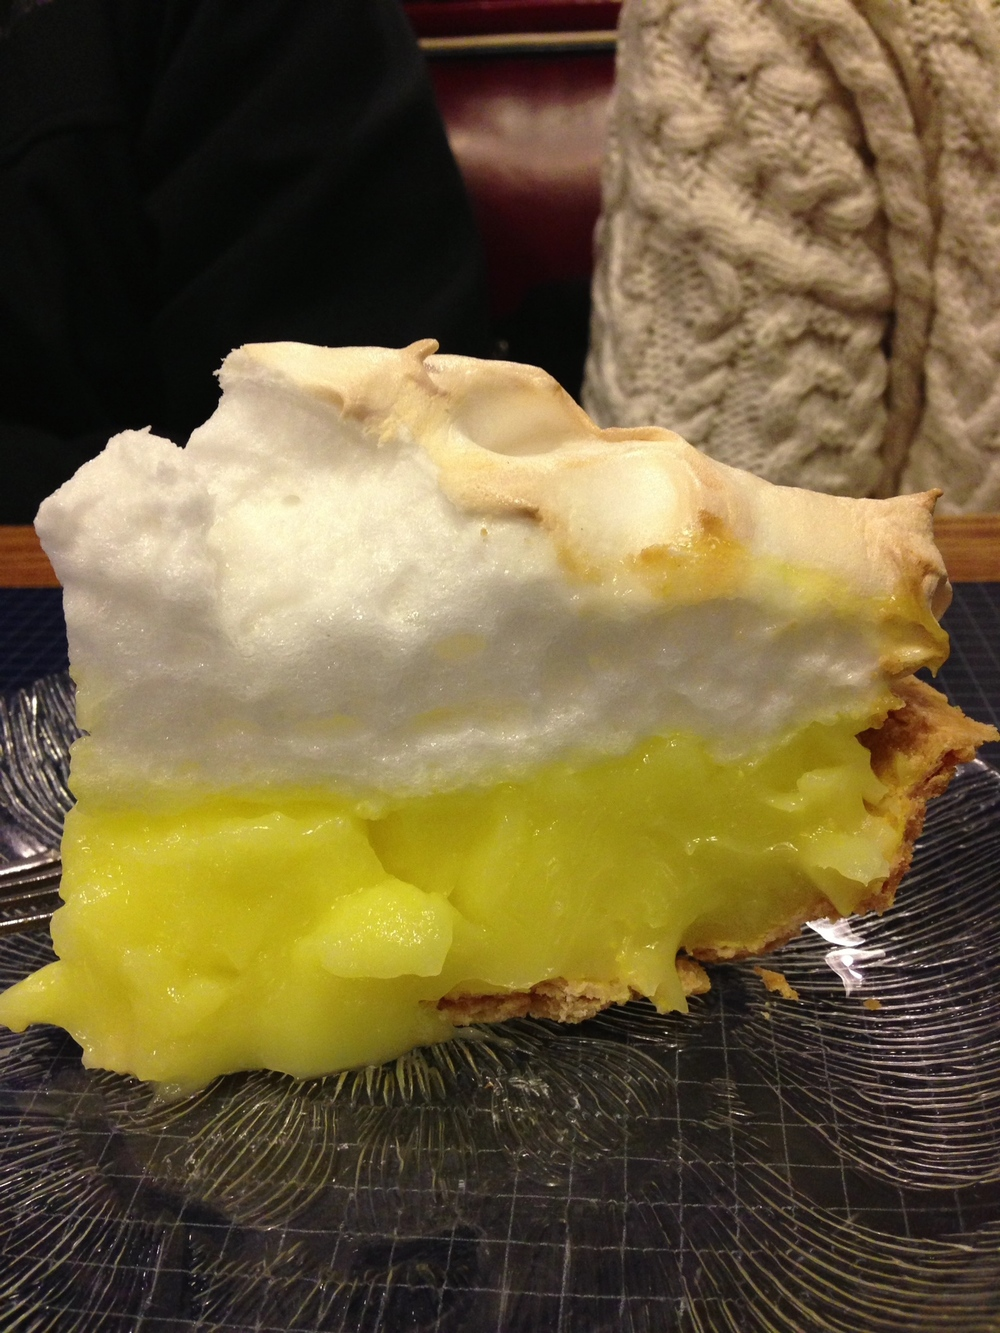 Lemon Meringue Pie (Walker's)